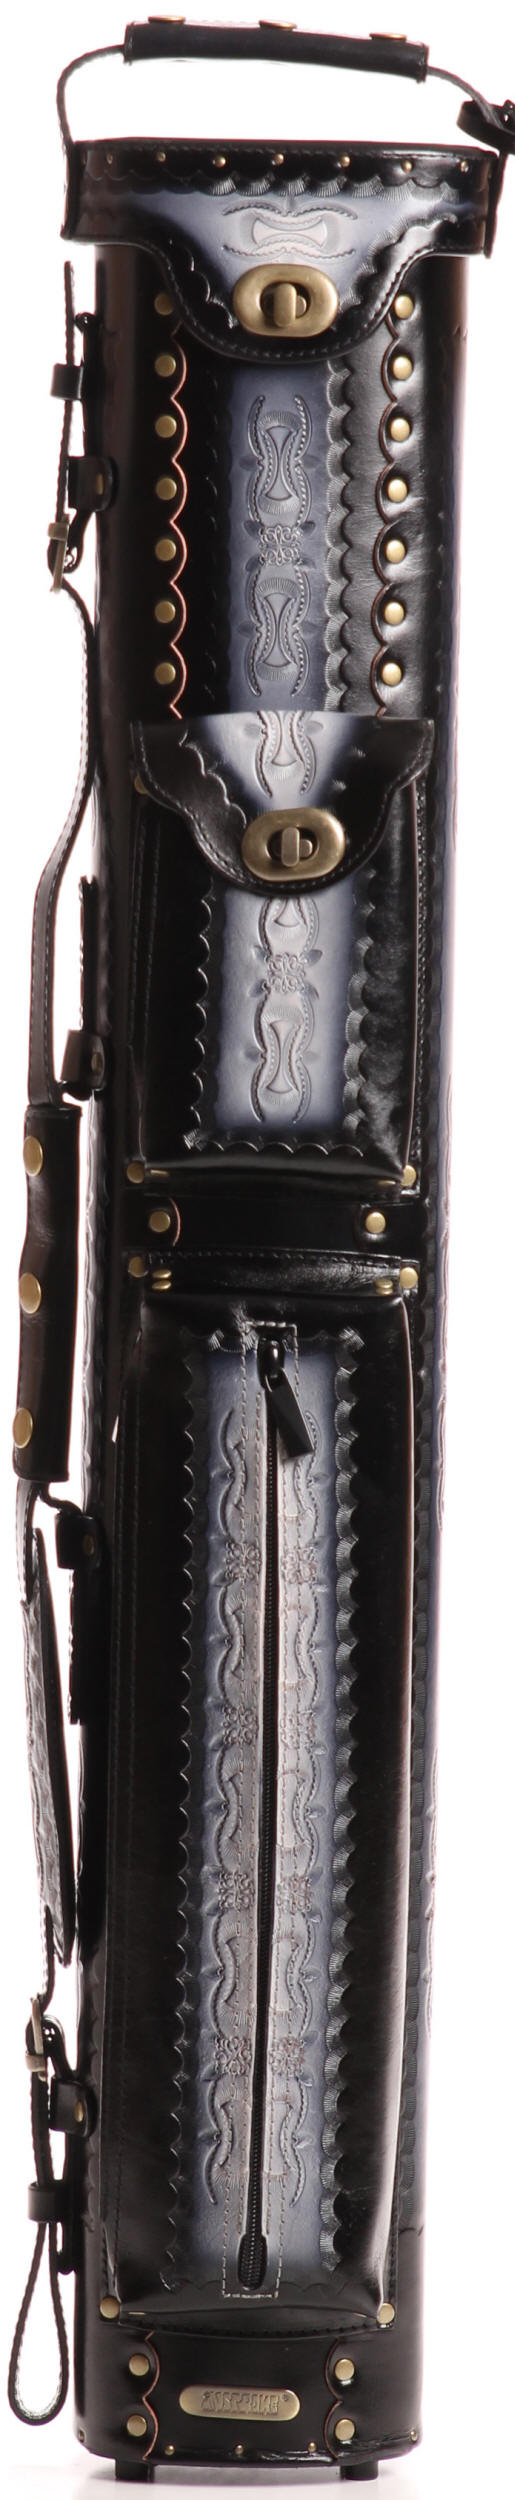 Instroke Saddle Series Leather Pool Cue Cases D06 Black